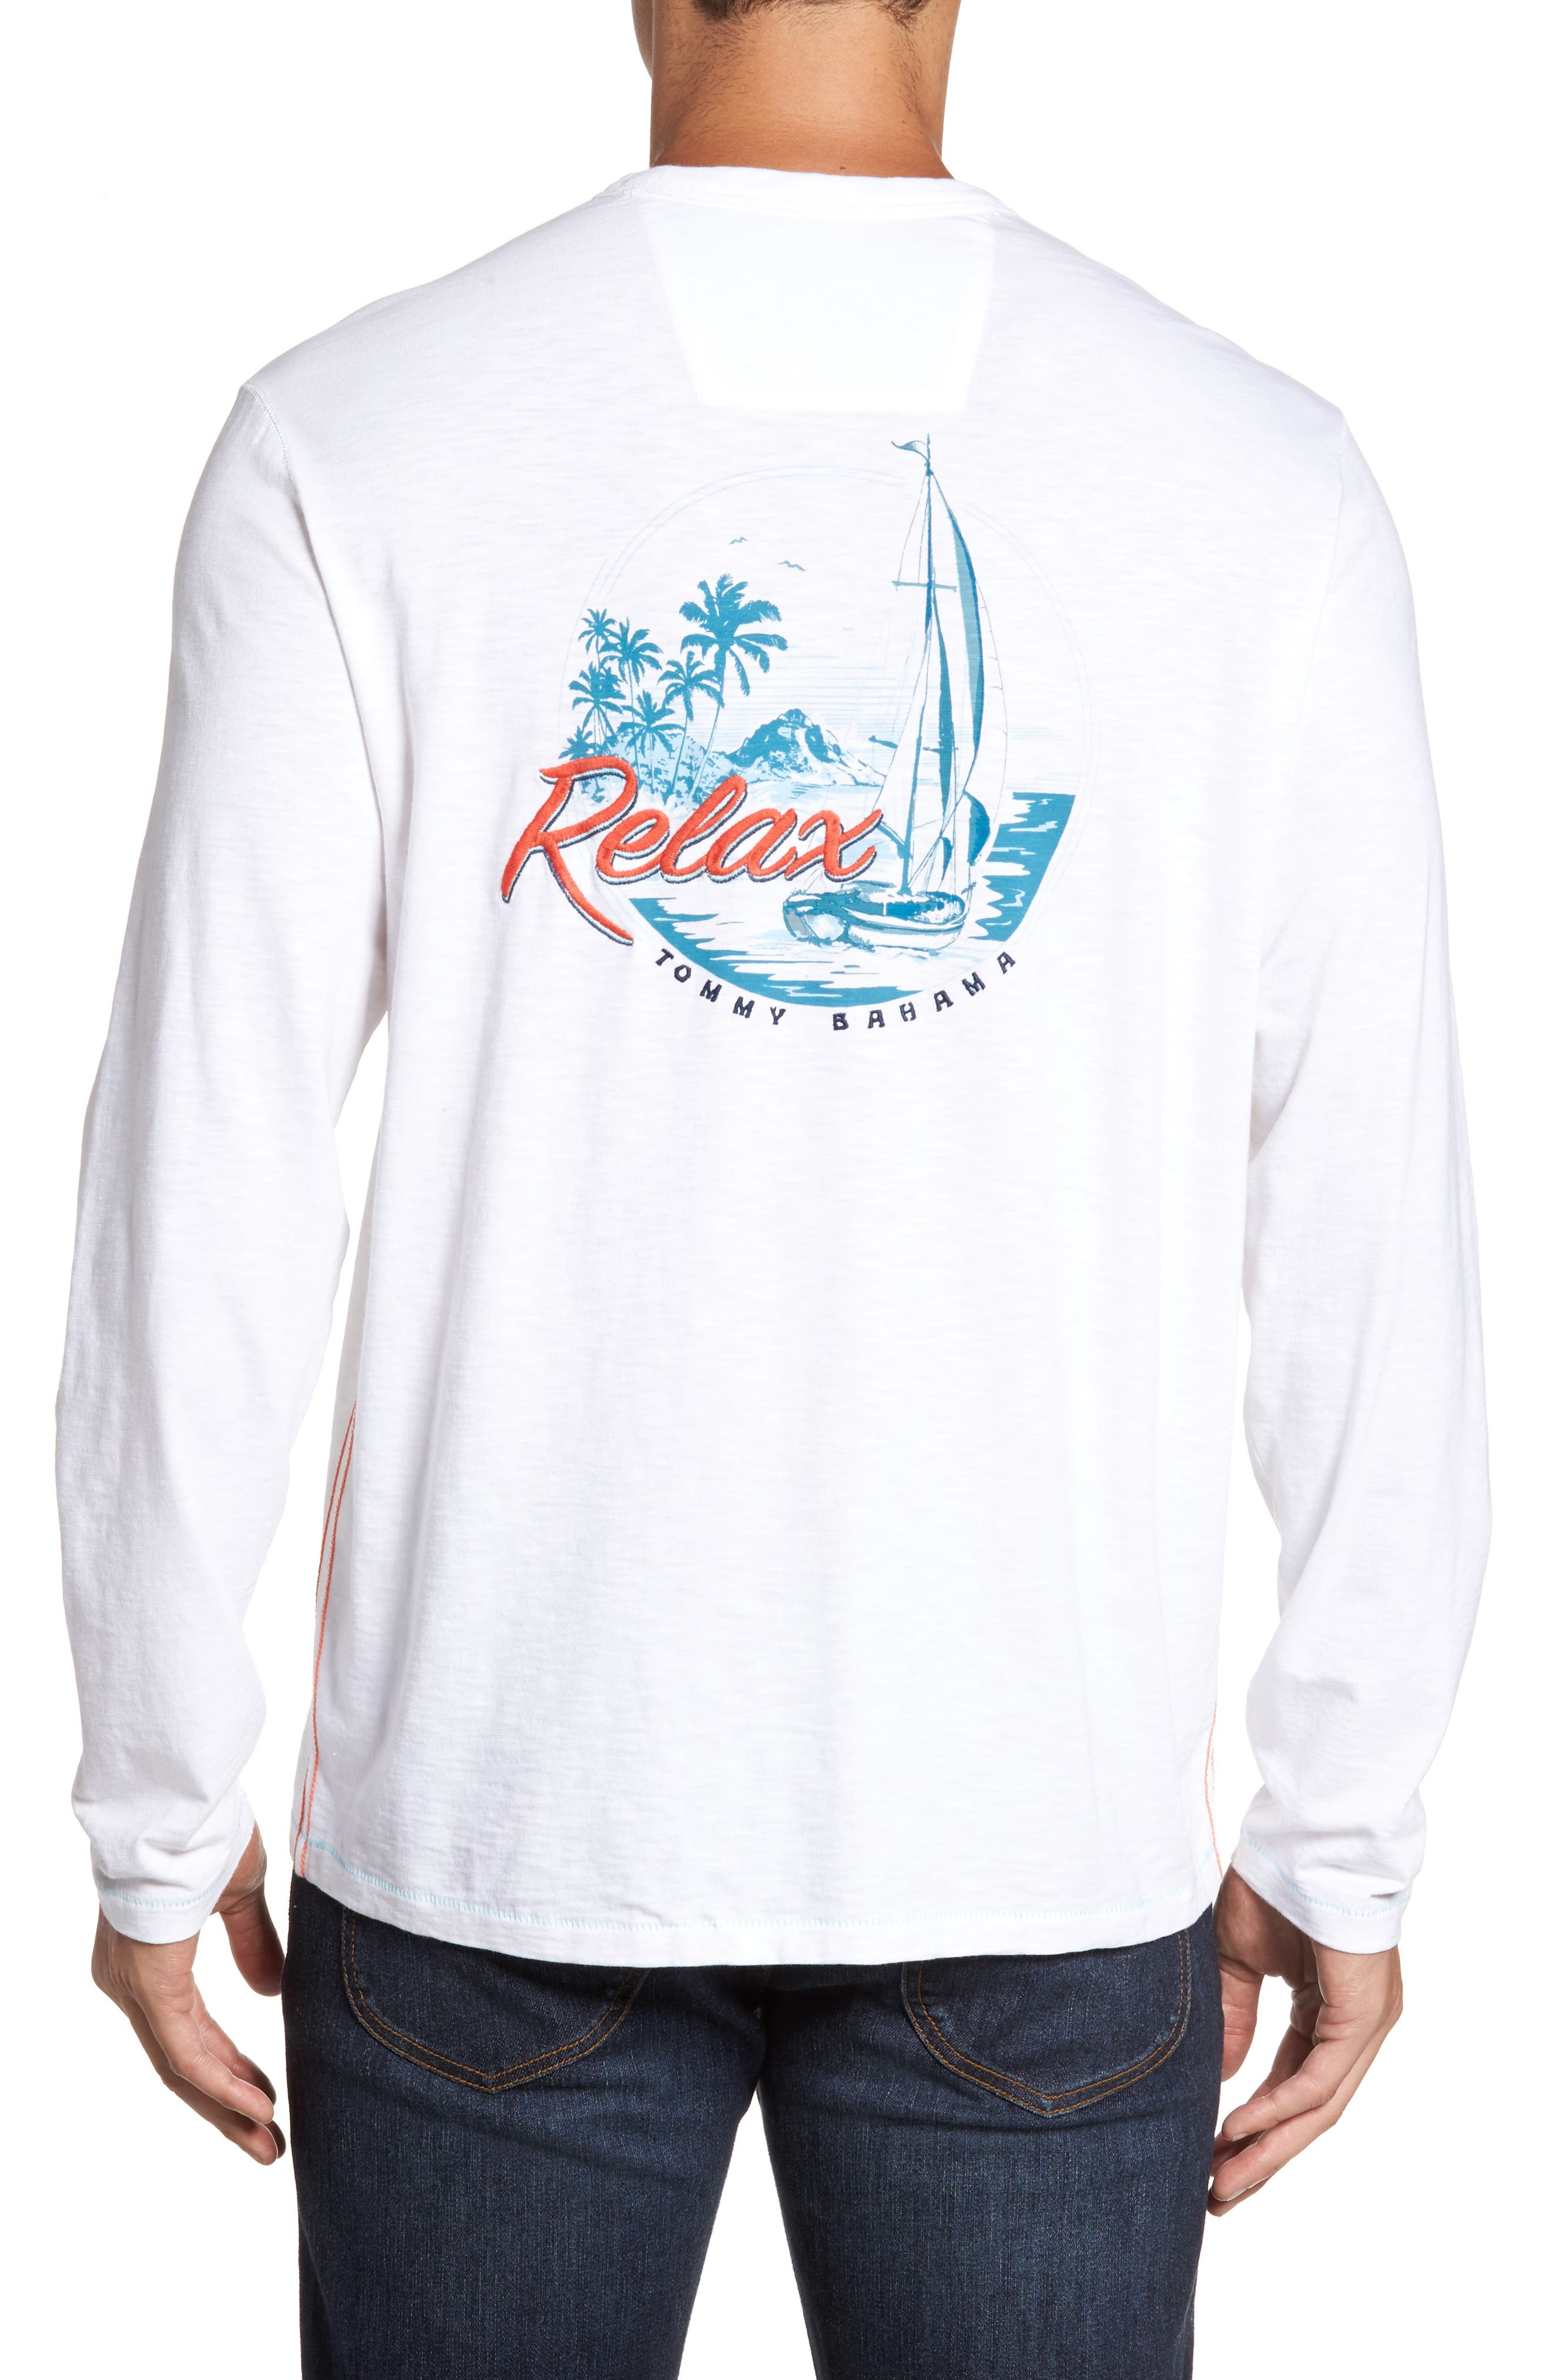 Relax at Sea Lux T-Shirt,                             Alternate thumbnail 2, color,                             100